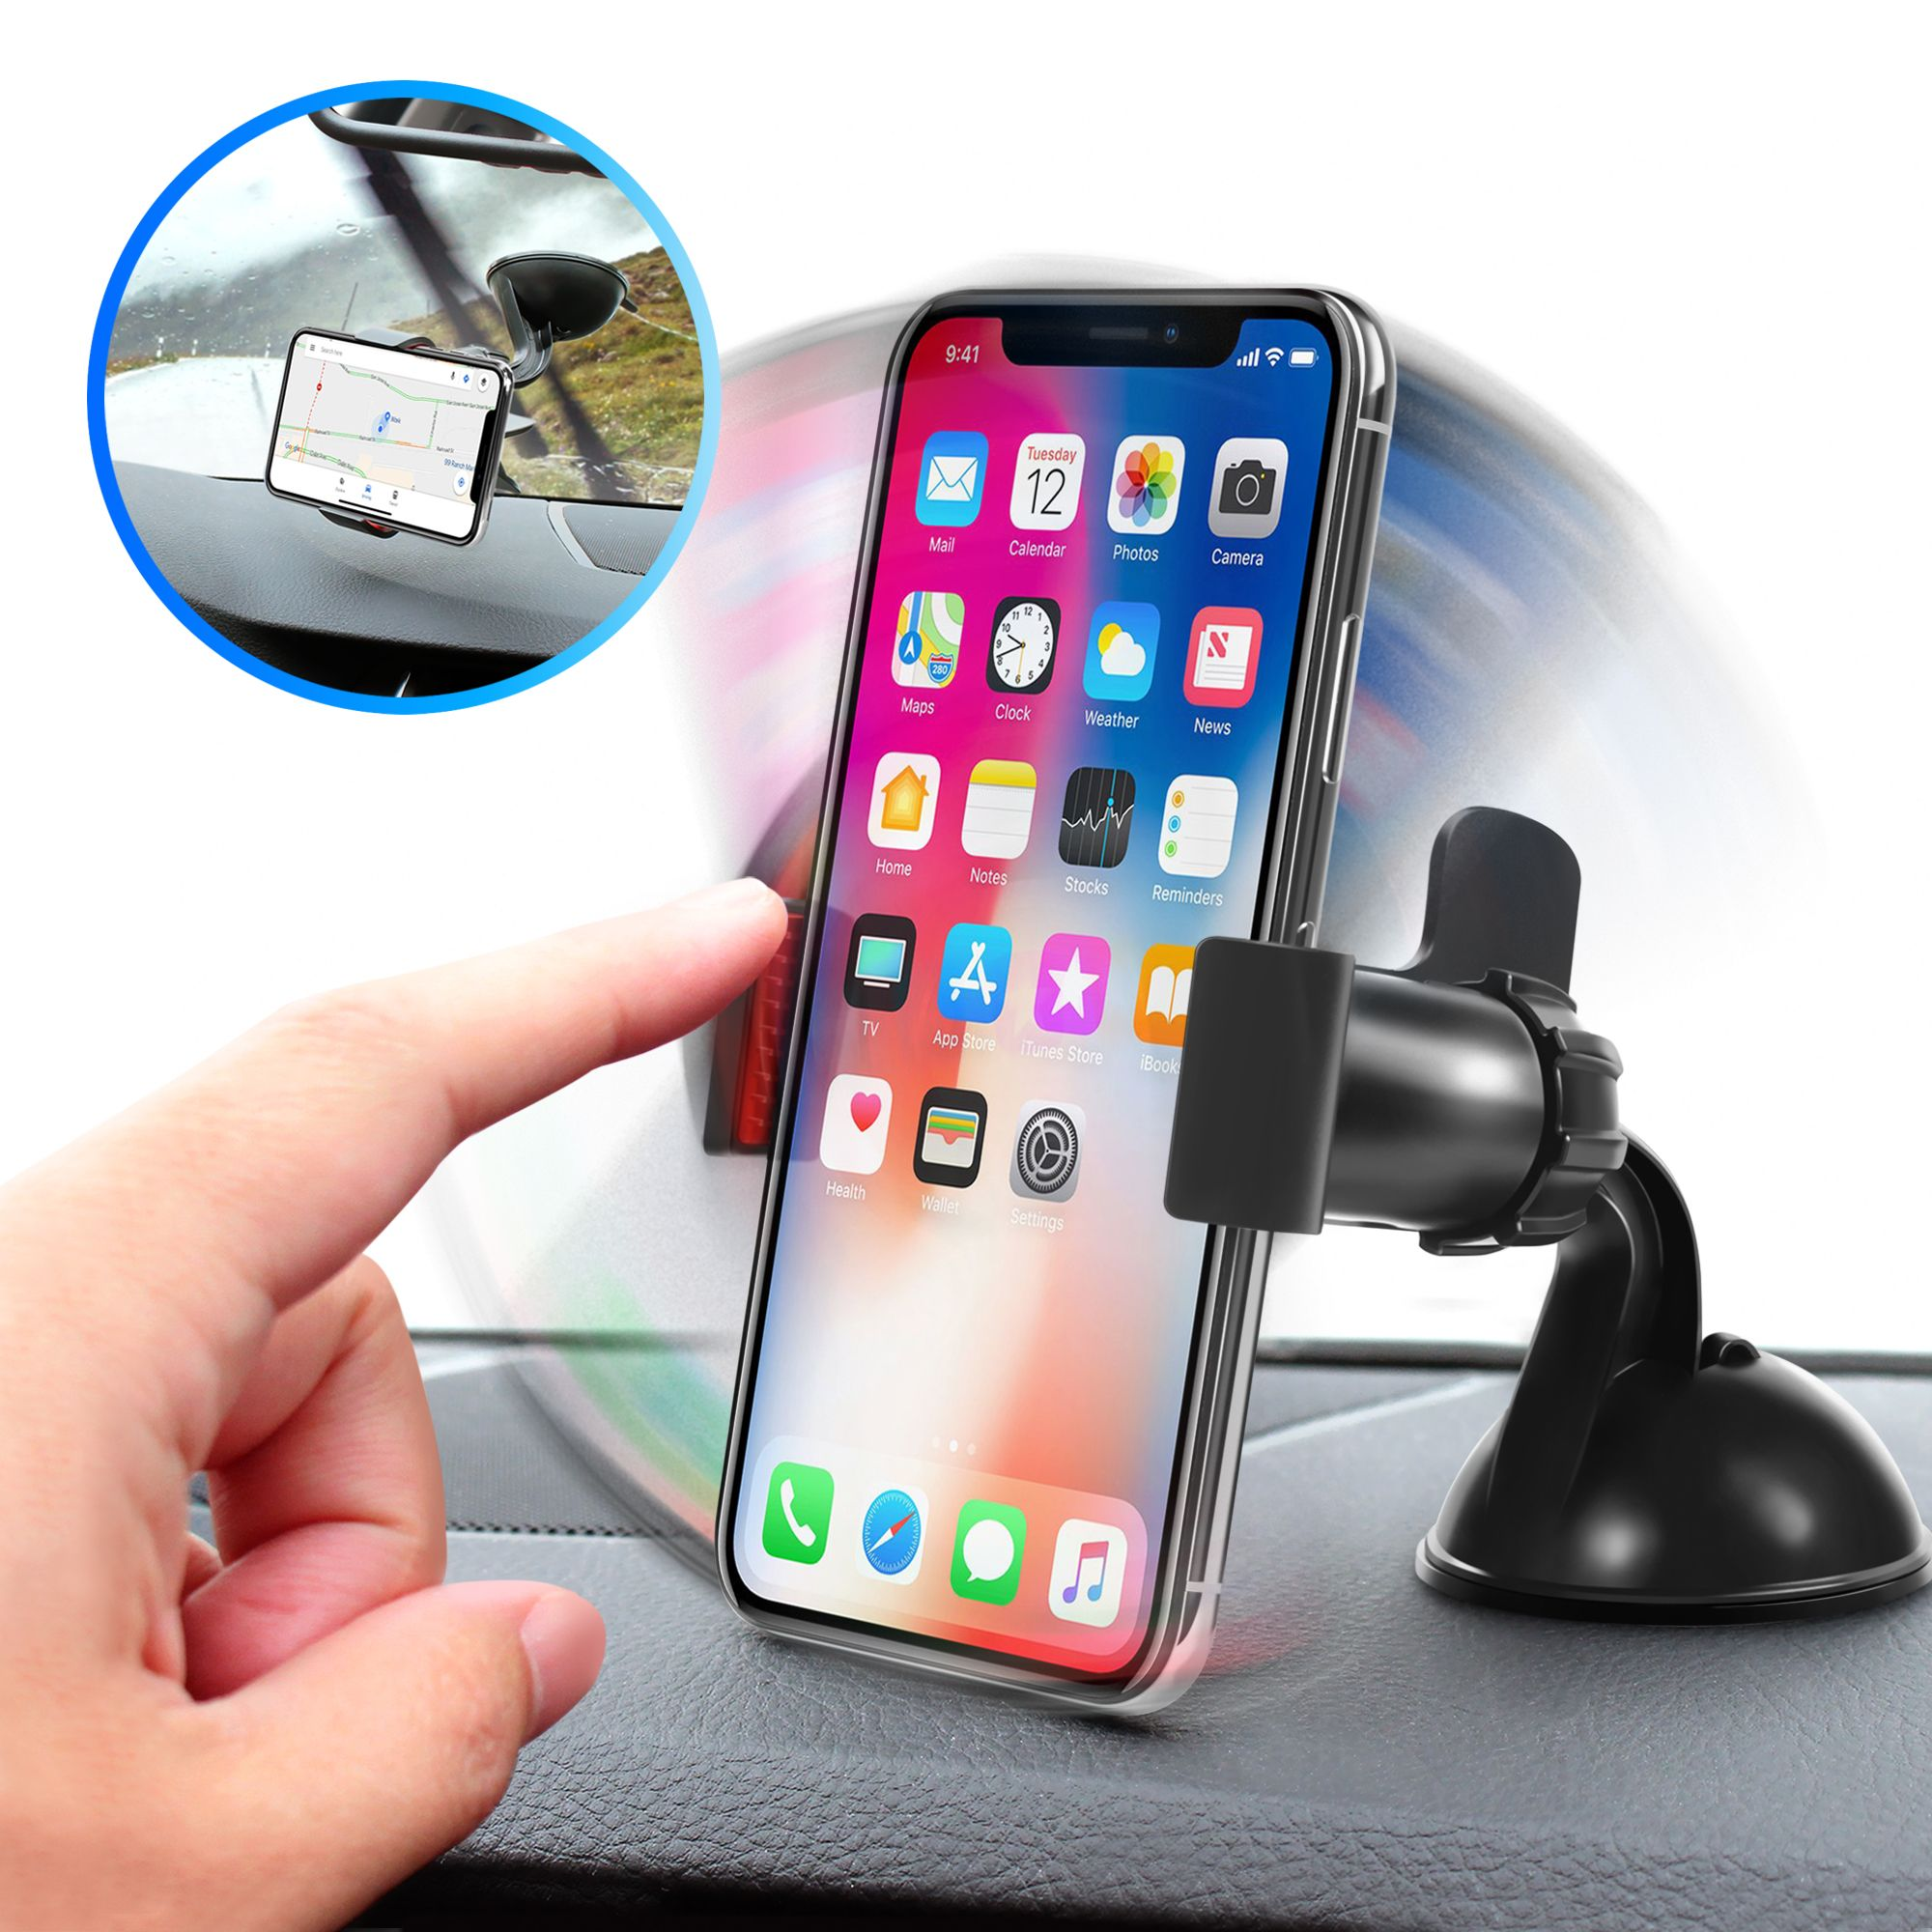 Black Cup Car Phone Holder Marrrch Car Phone Mount,360 Degree Cell Phone Car Mount Compatible for iPhone XR Xs Max Xs X 8 7 6,Samsung Galaxy S10 S10+ S10e S9 Adjustable Distance